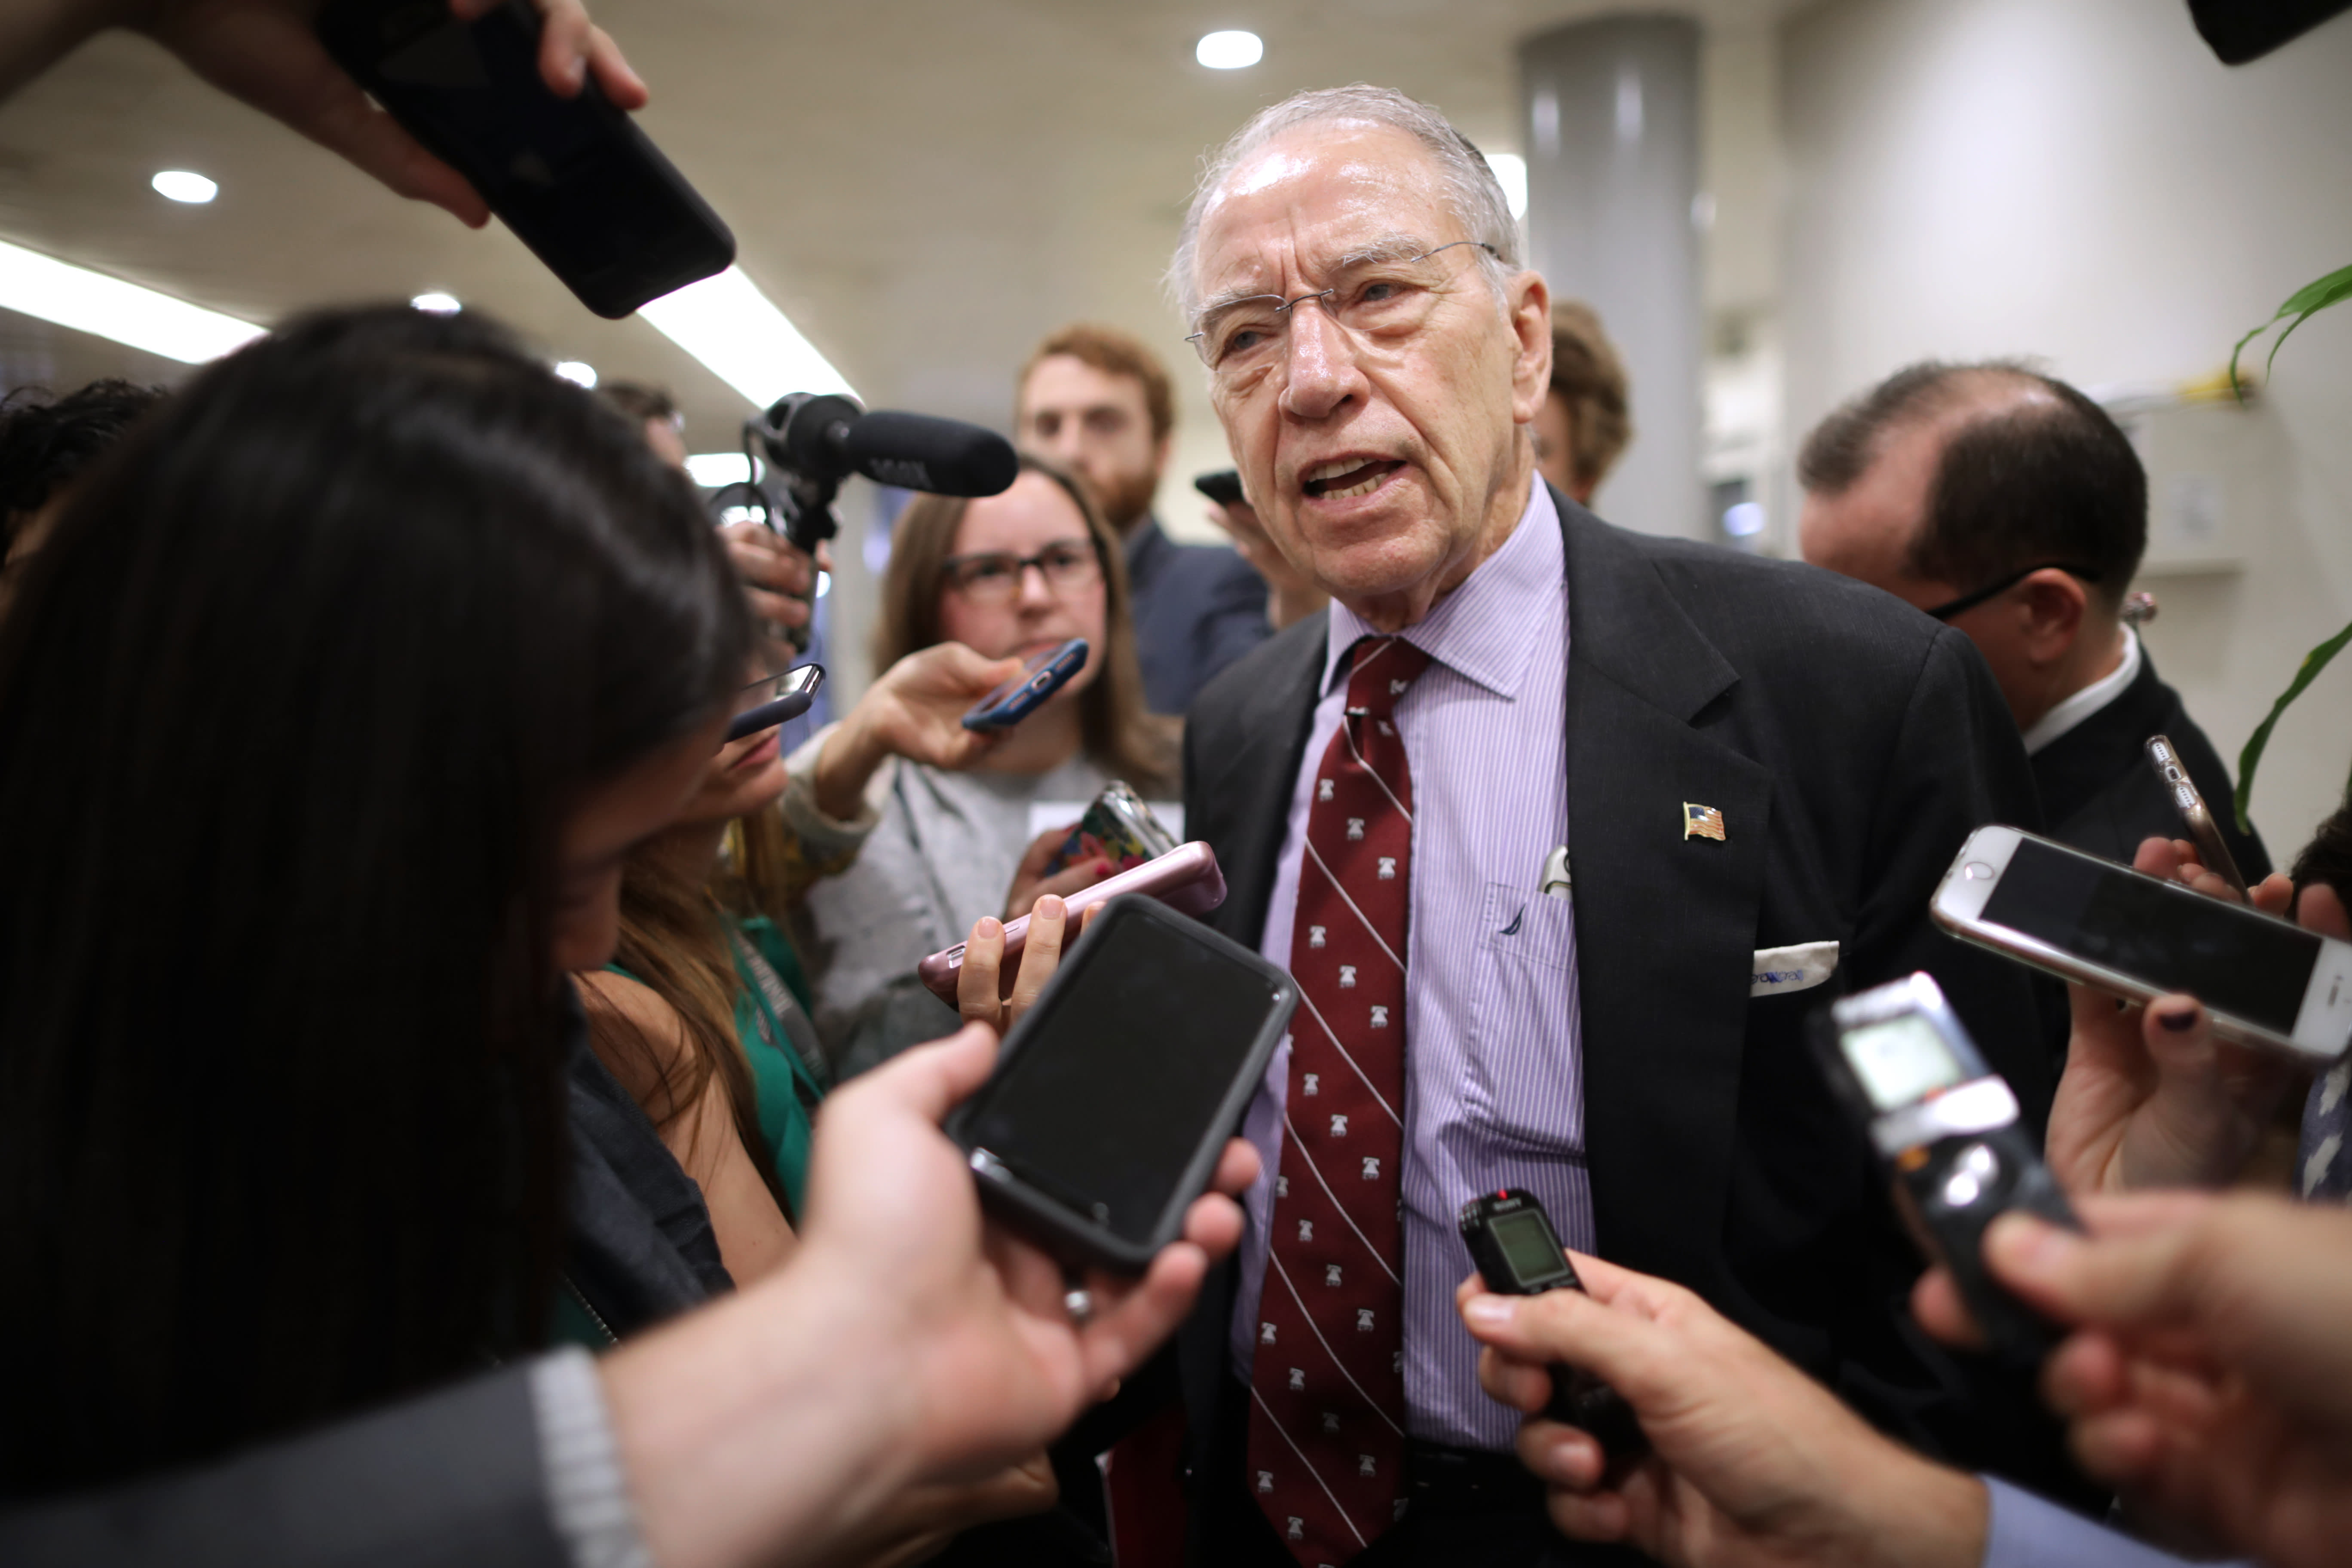 Iowa Sen. Chuck Grassley: Farmers don't want aid, they want trade